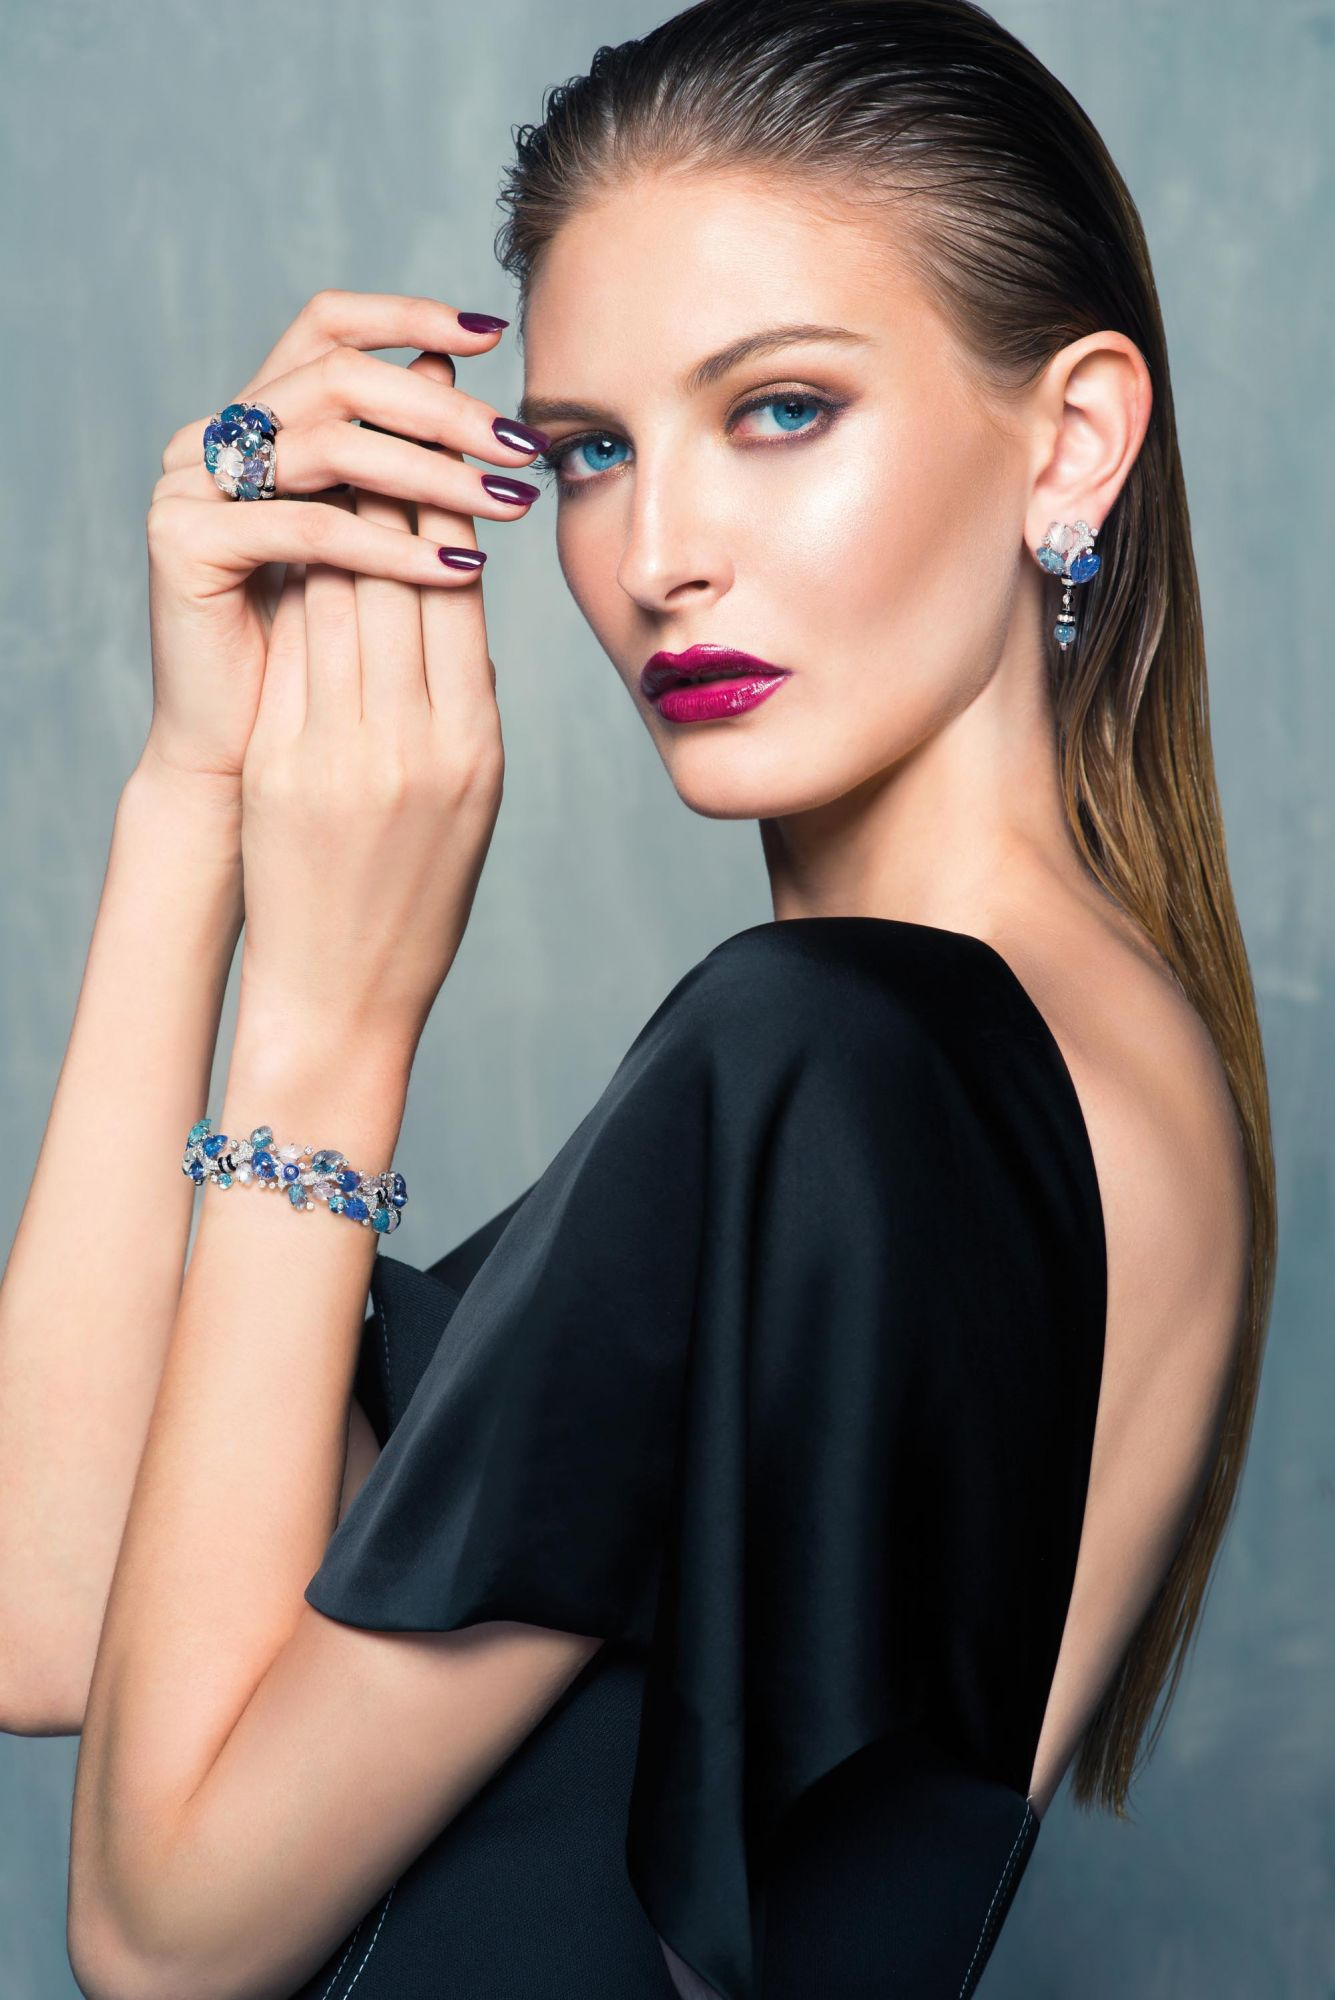 BLUE CRUSH: Earrings, ring and bracelet in white gold set with diamonds, aquamarines, tanzanites, moonstones and onyx by Cartier; dress by Diane von Furstenberg